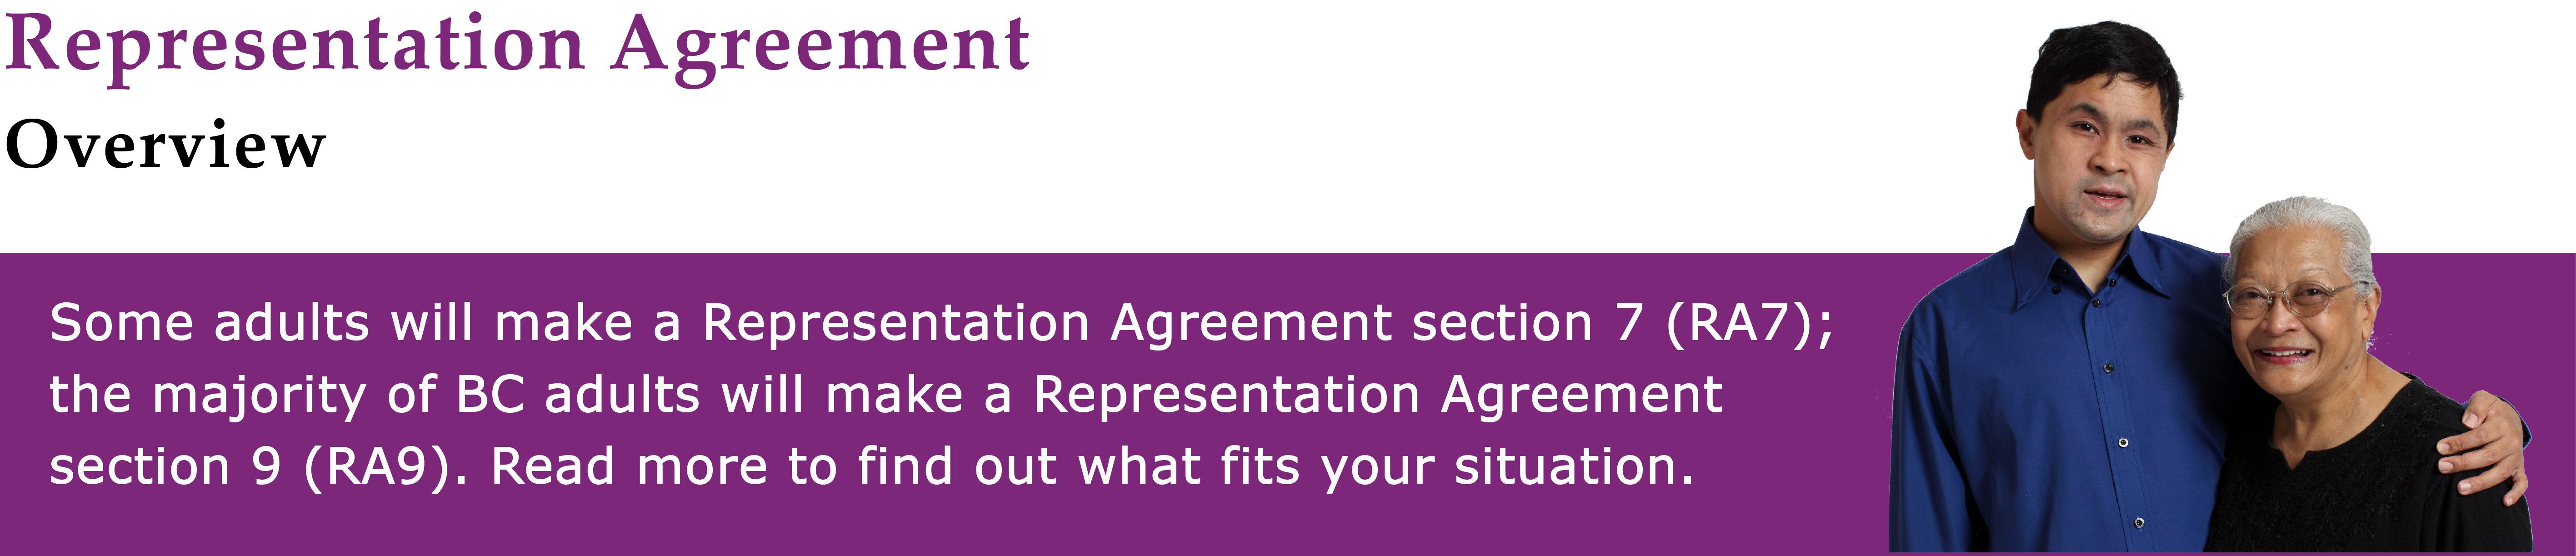 Representation Agreement Overview